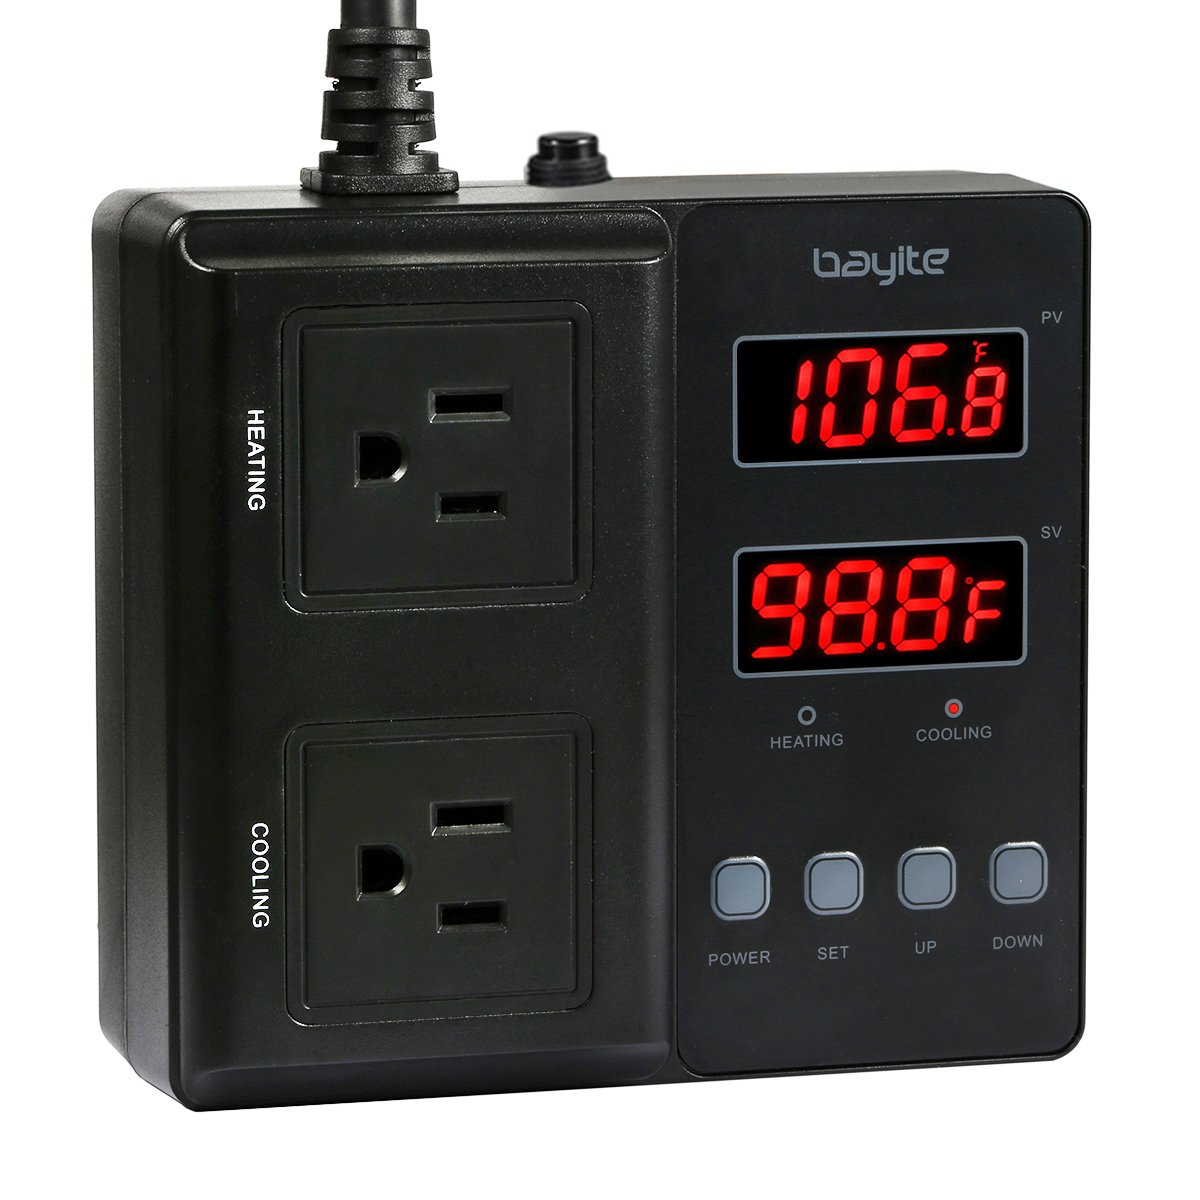 bayite Temperature Controller 1650W BTC211 Digital Outlet Thermostat, Pre-wired, 2 Stage Heating and Cooling Mode, 110V - 240V 15A